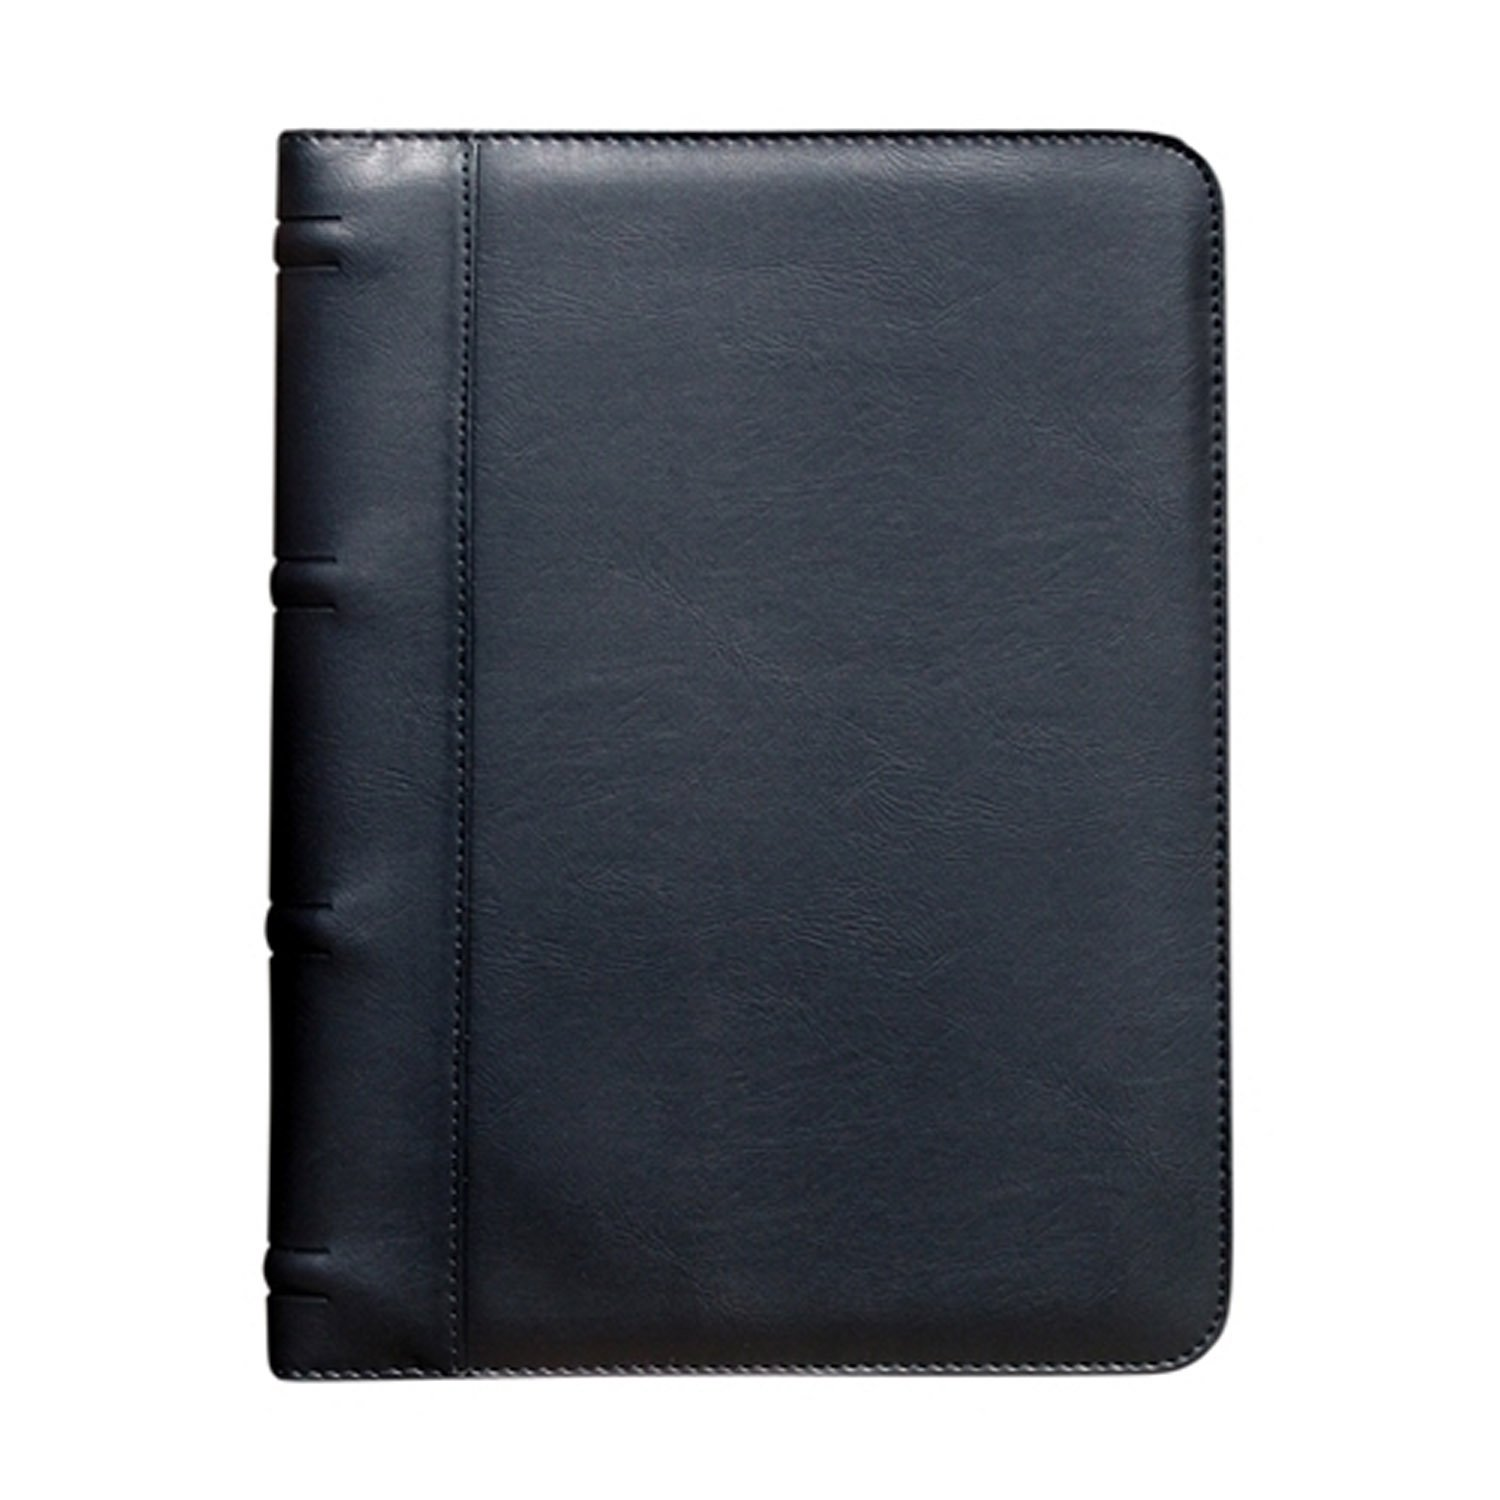 Padfolio, BuyAgain G-9 Soft Leatherette Black Business Resume document Organizer Padfolio Portfolio Holder With Multiple Pockets & ID card window.